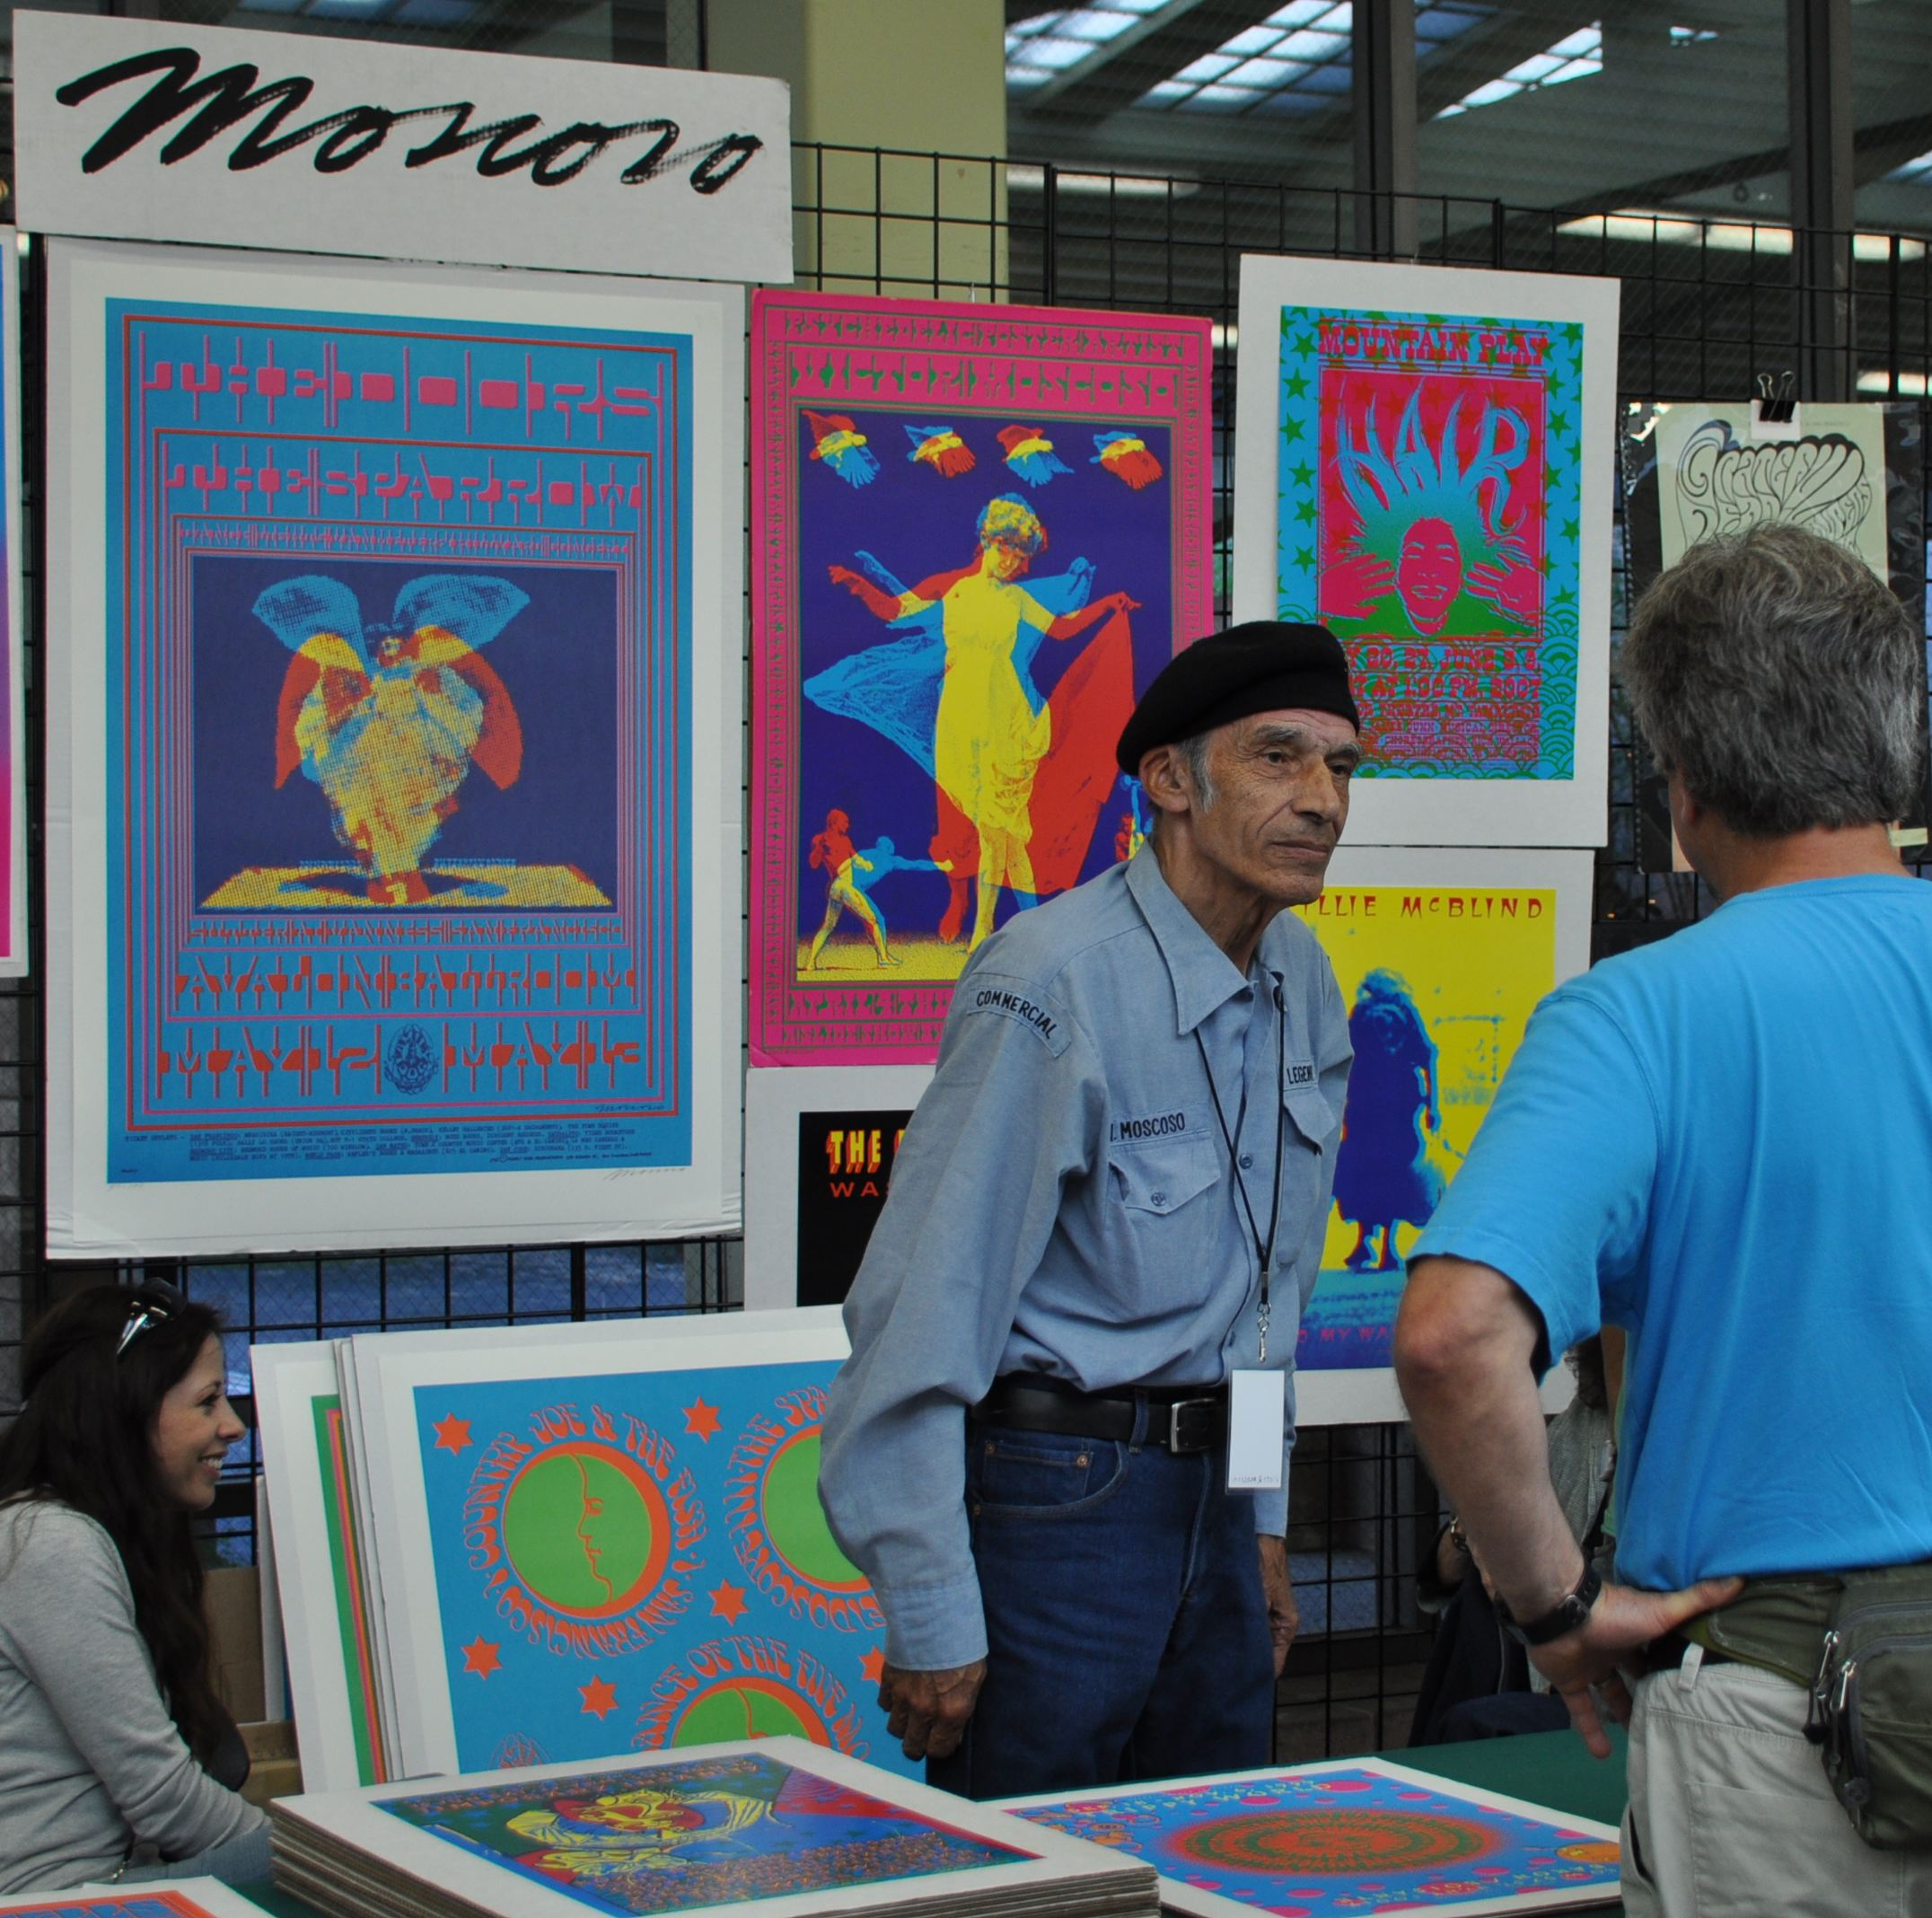 Victor Moscoso is one of the most respected artists from the San Francisco scene of the 1960s.